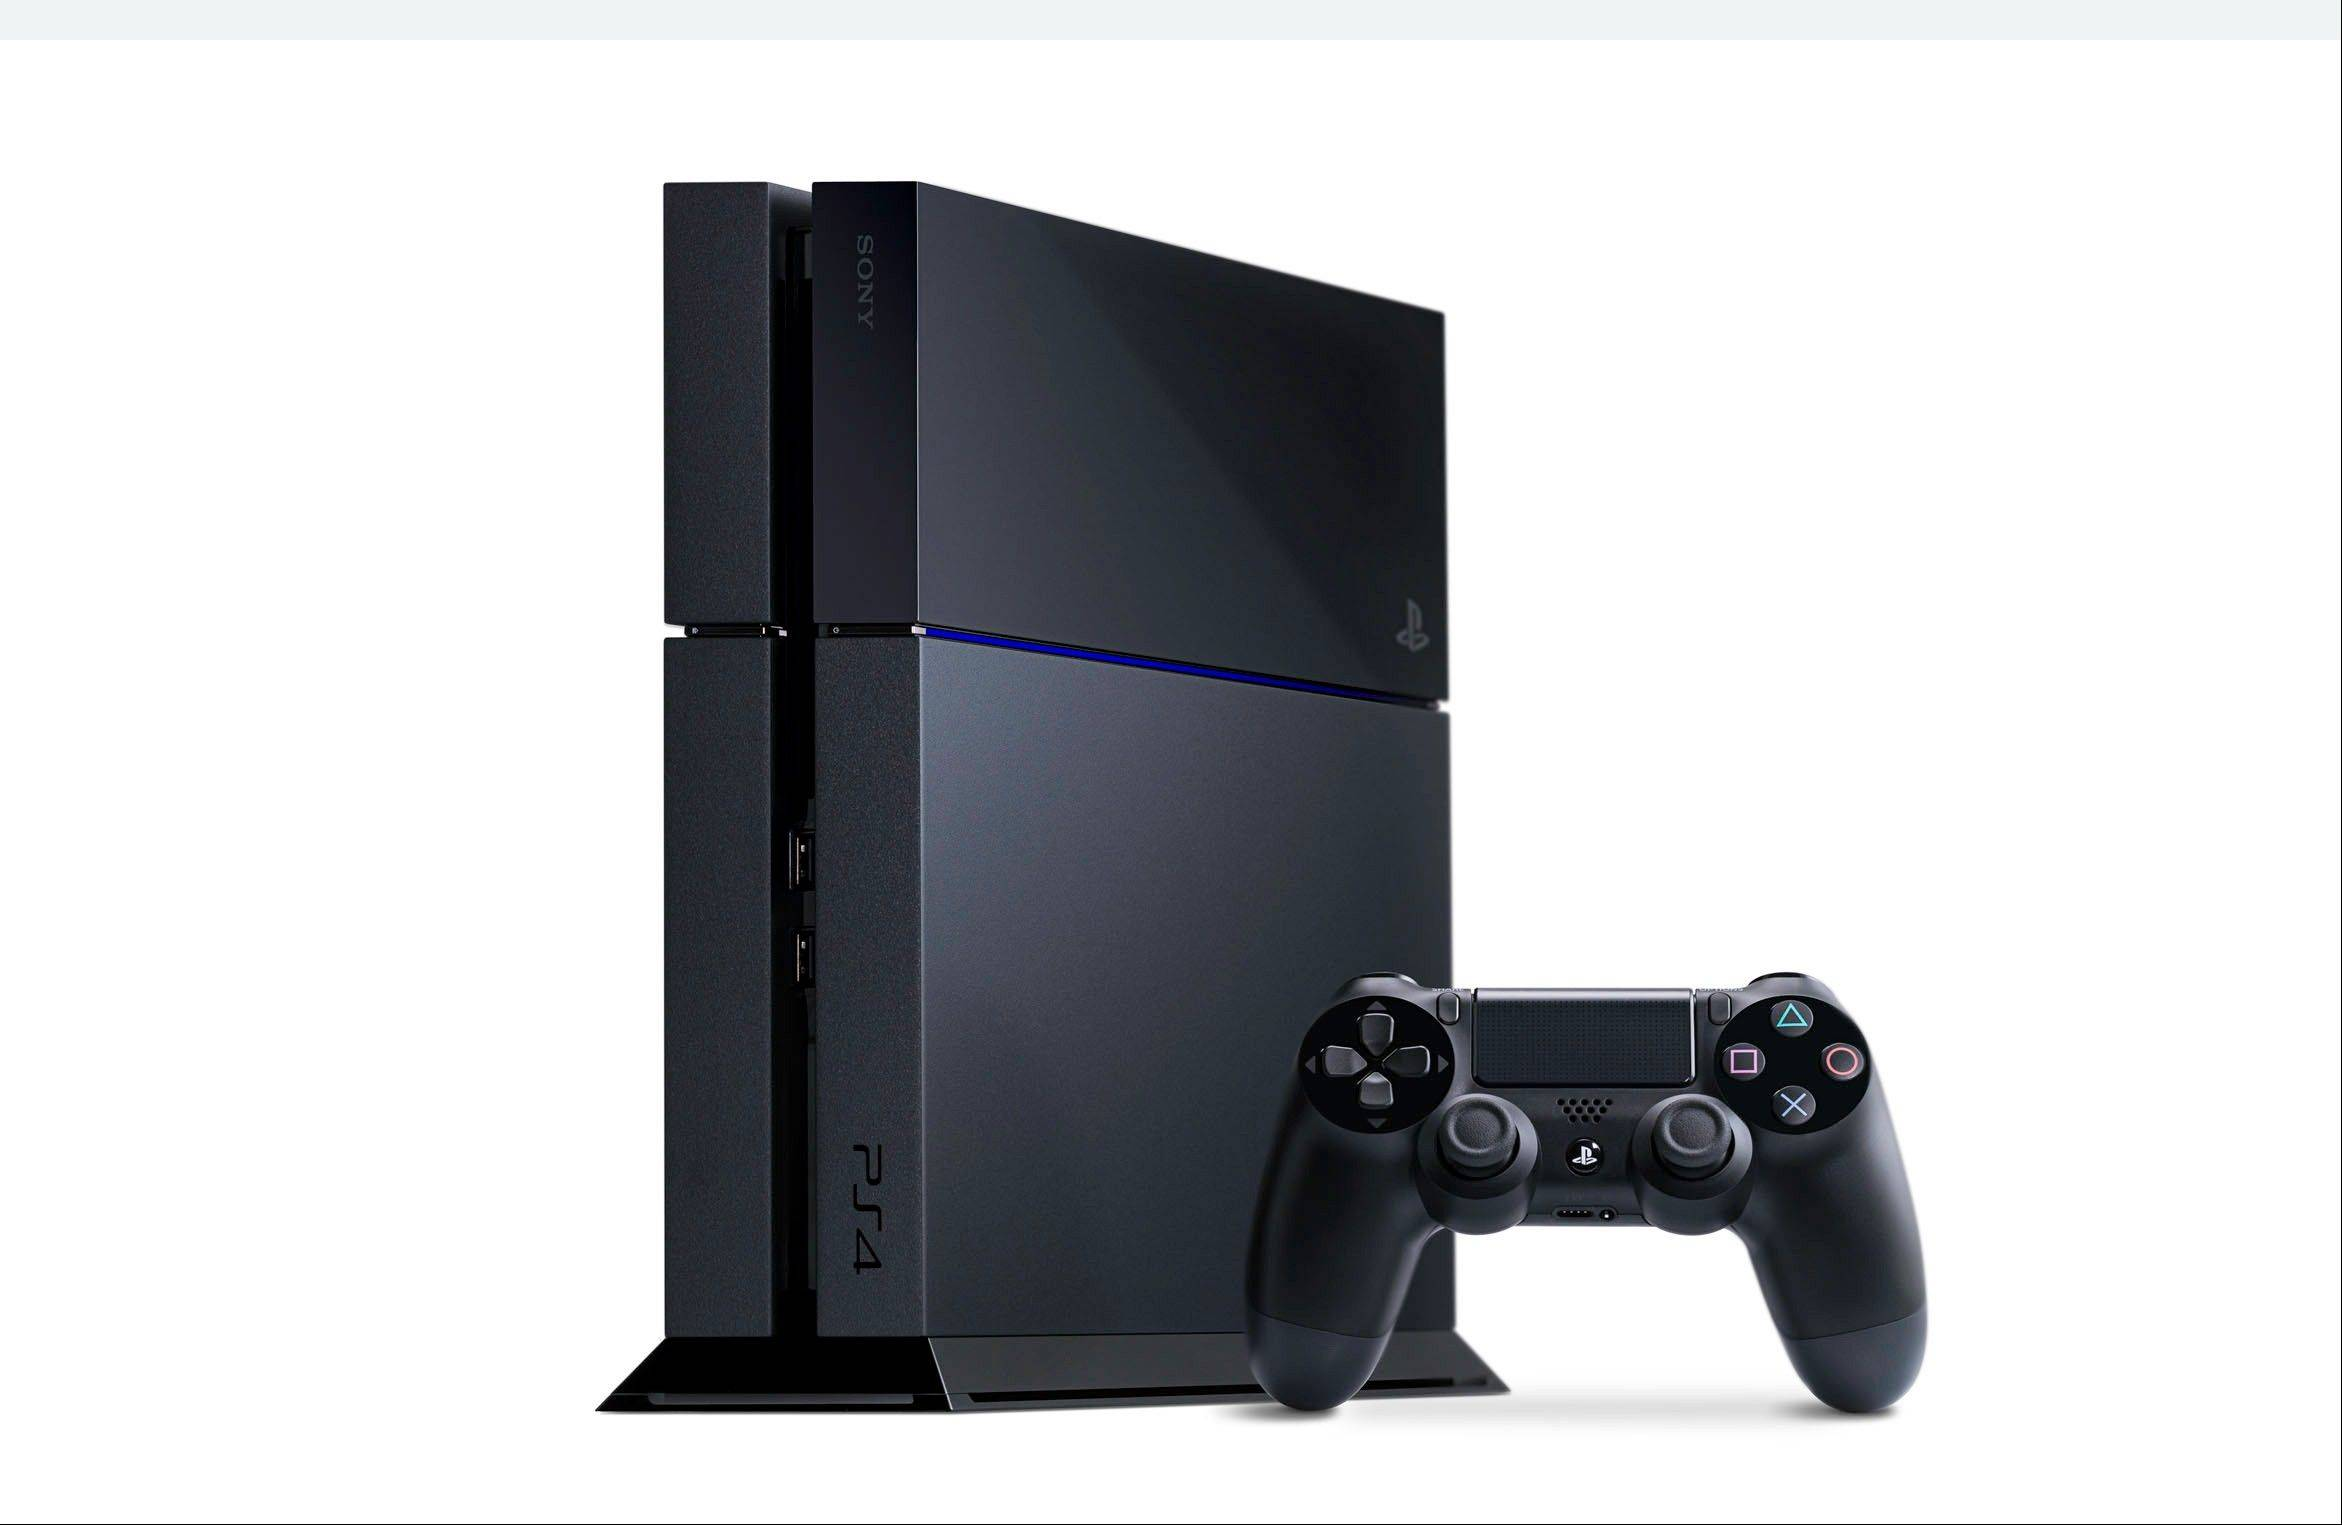 Sony Corp. sold more than 1 million PlayStation 4 consoles in North America during the first 24 hours of sales, though the company said some buyers reported glitches including the device suddenly turning itself off.